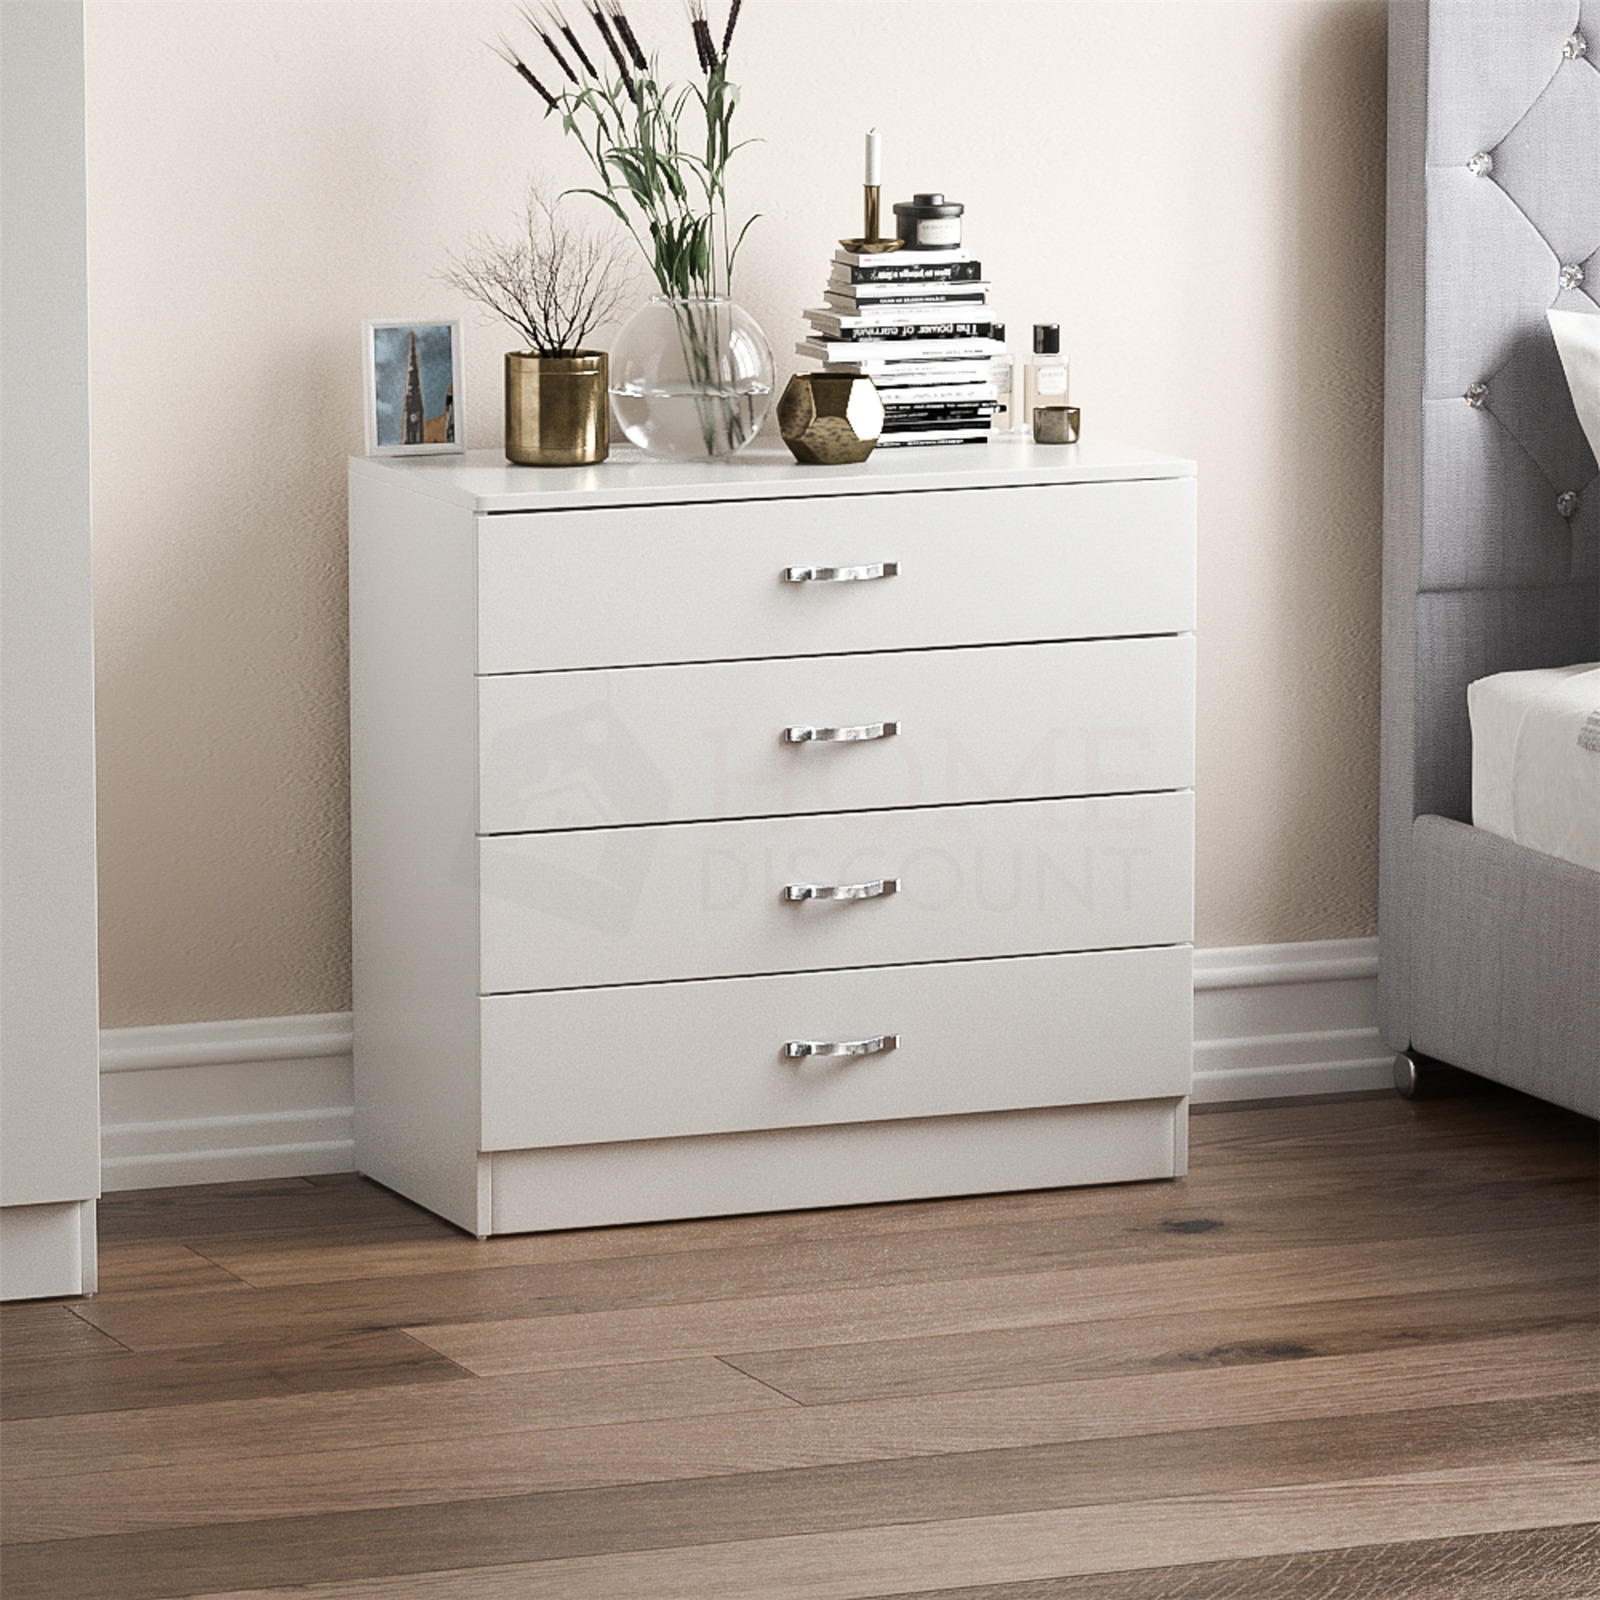 RIANO CHEST OF Drawers White 4 Drawer Metal Handles